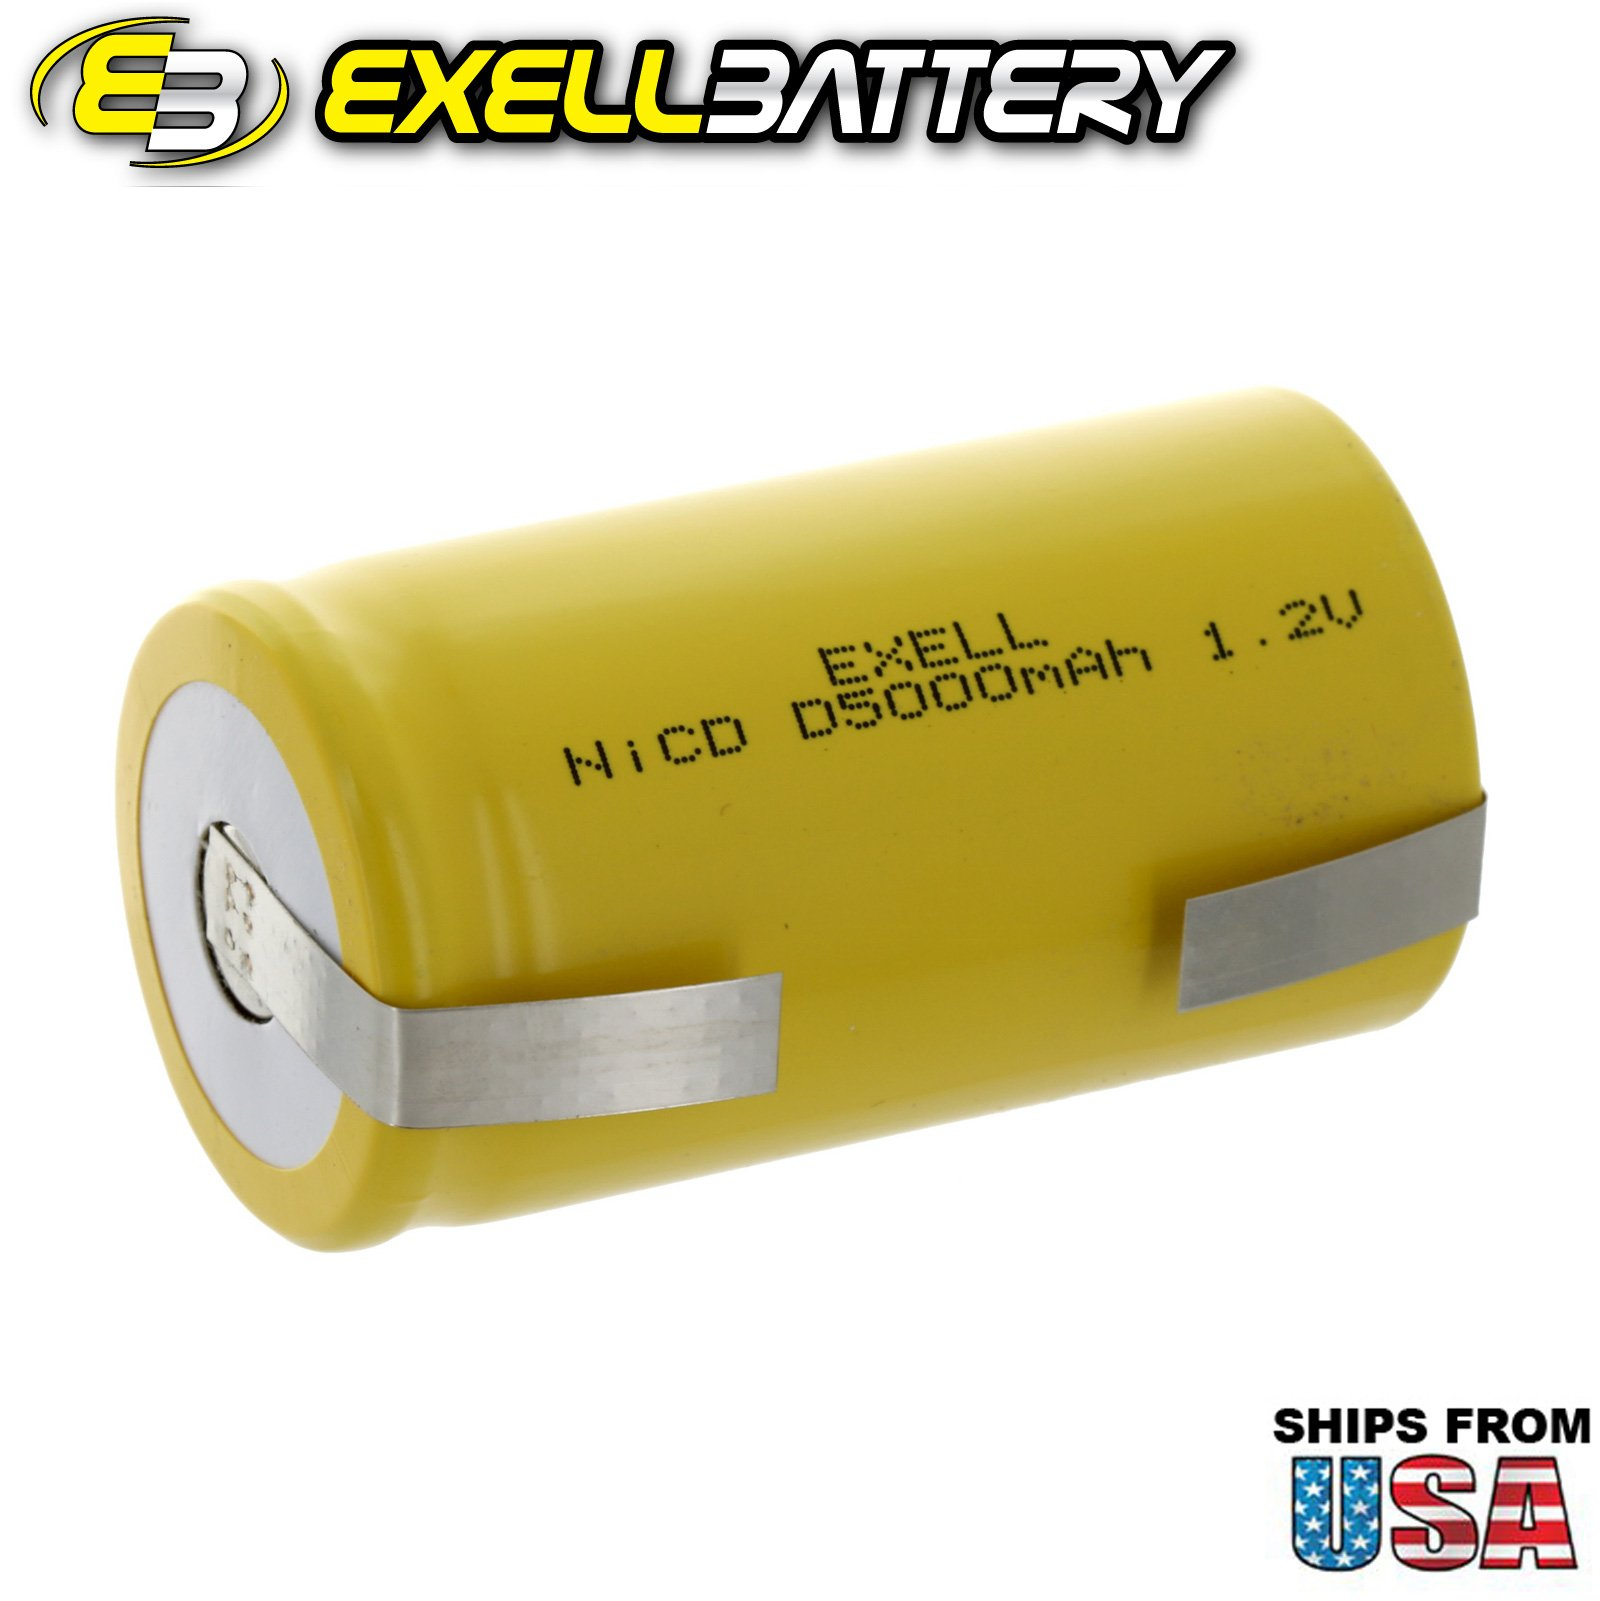 20x Exell D Size 1.2V 5000mAh NiCD Rechargeable Batteries with Tabs for medical instruments/equipment, electric razors, toothbrushes, radio controlled devices, electric tools by Exell Battery (Image #2)